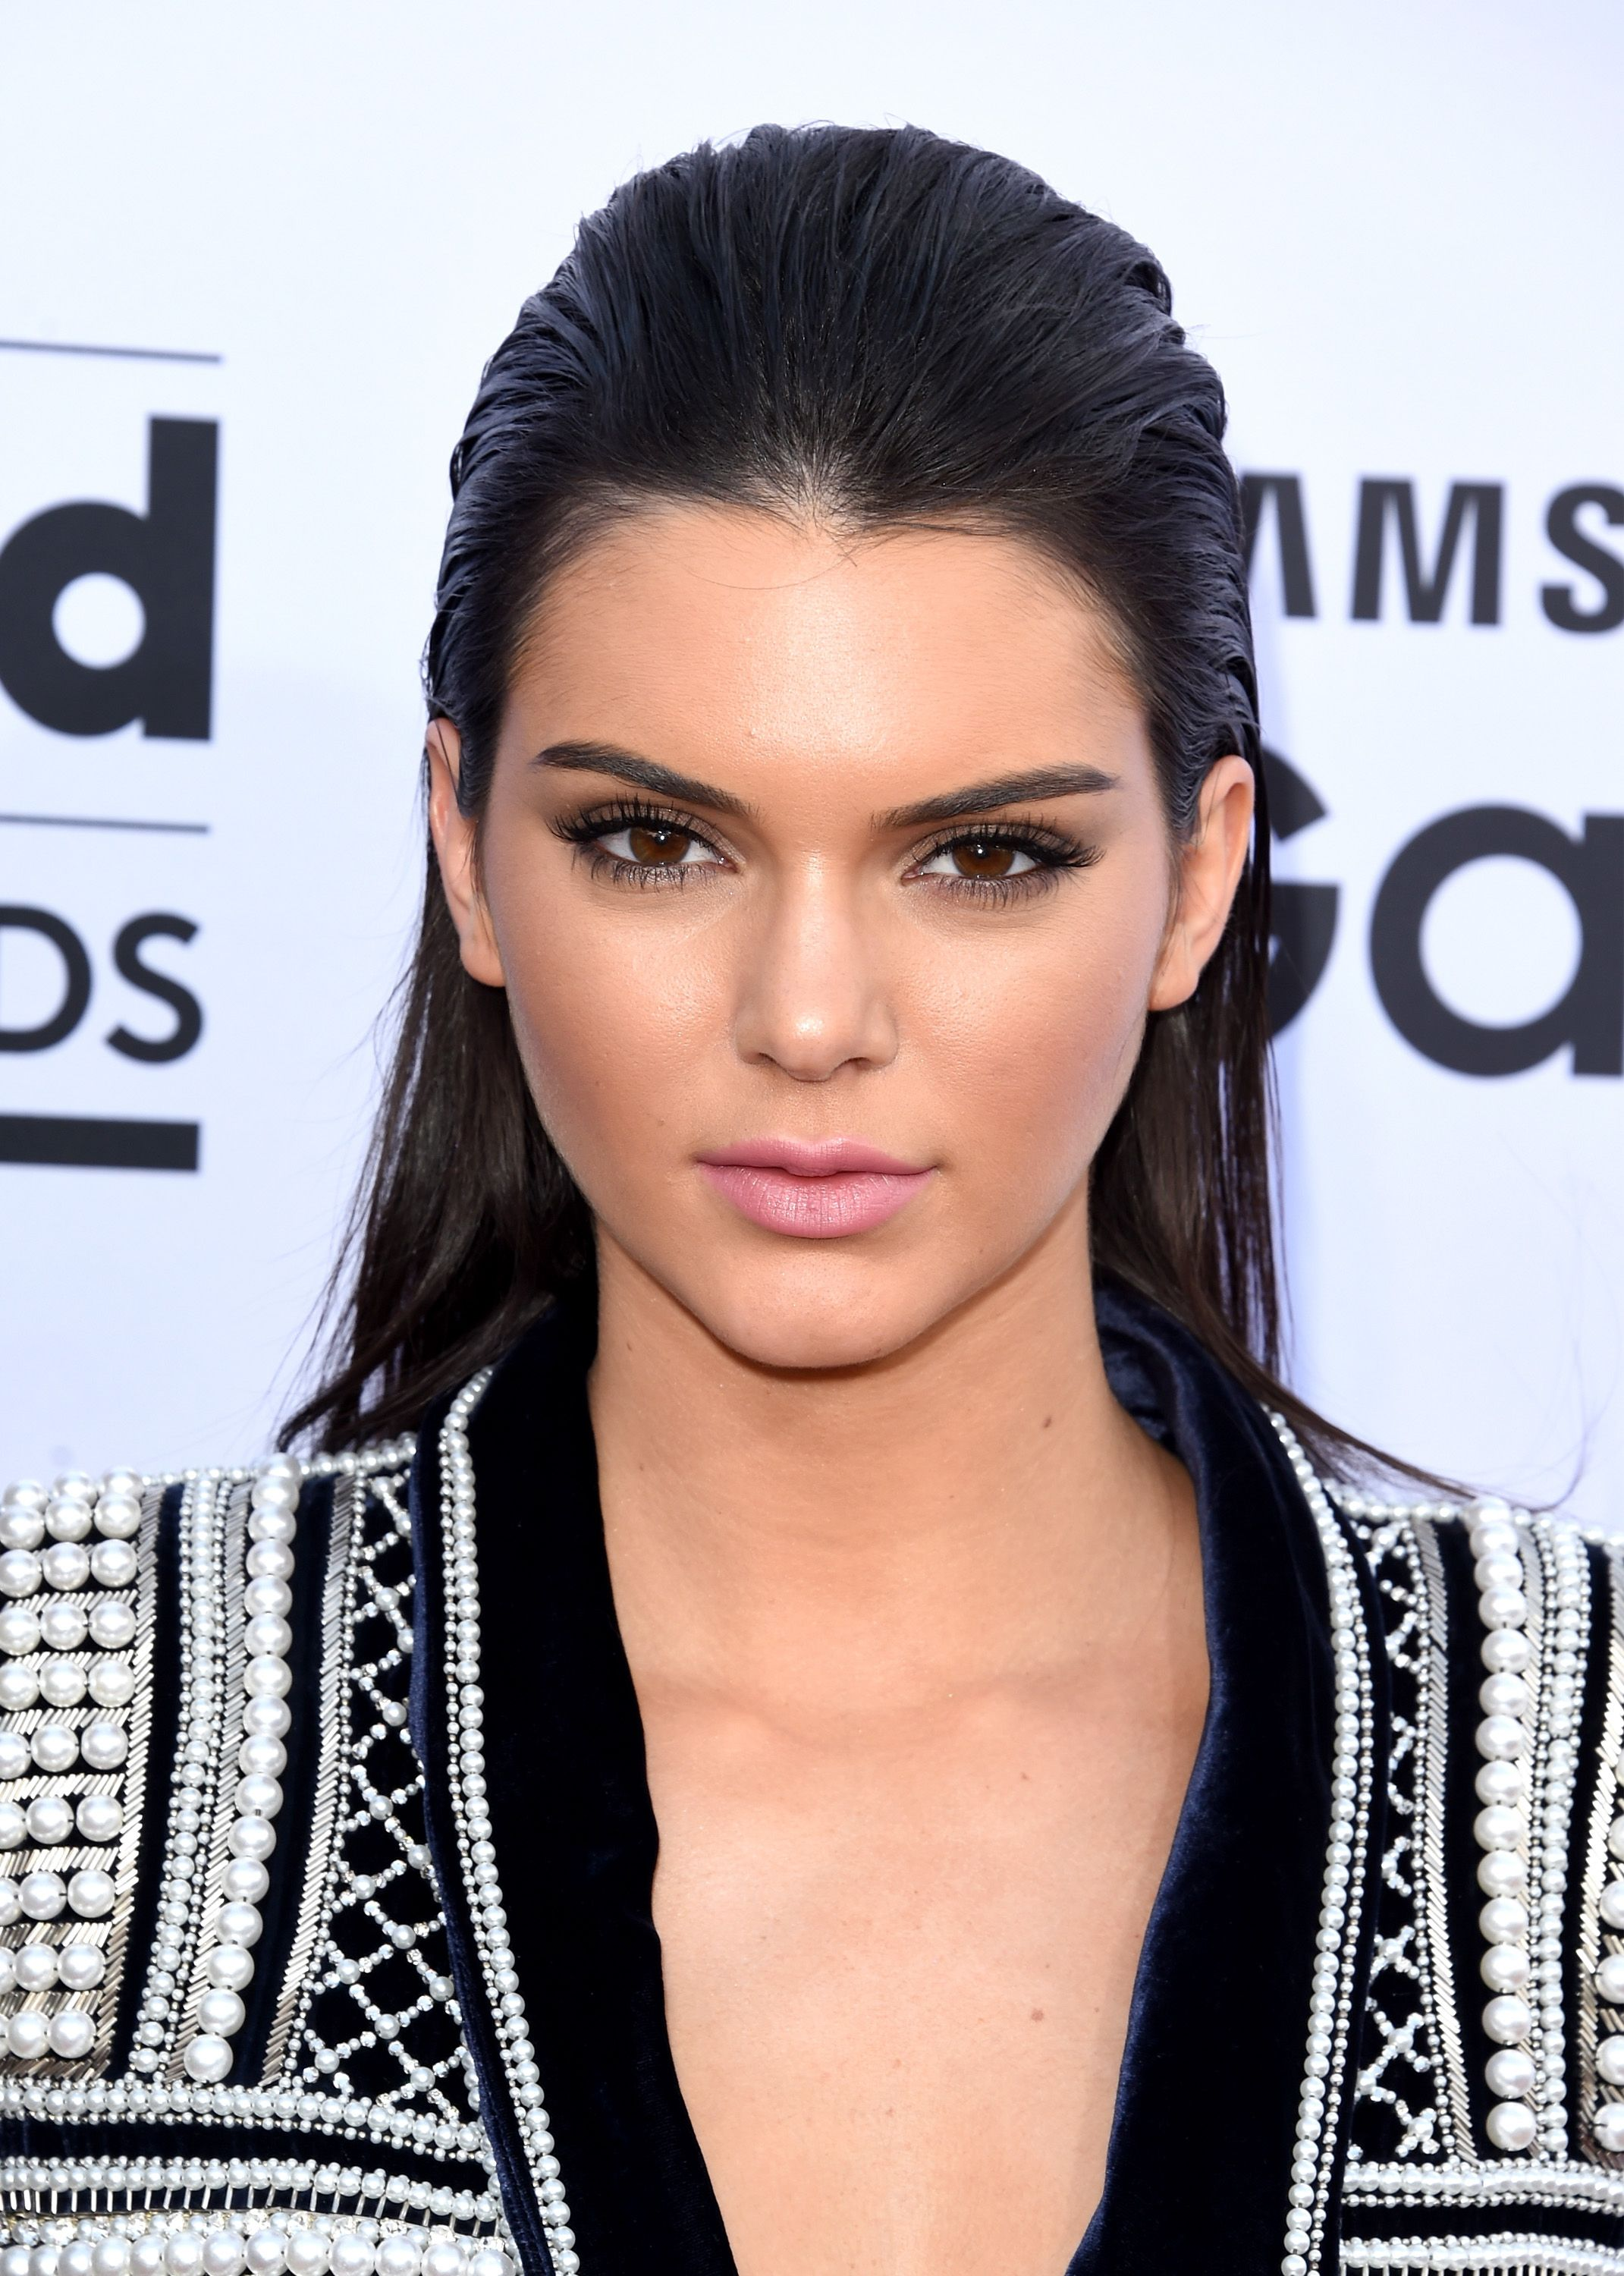 Channel Kendal Jenner with a chic, slicked back hairstyle ...